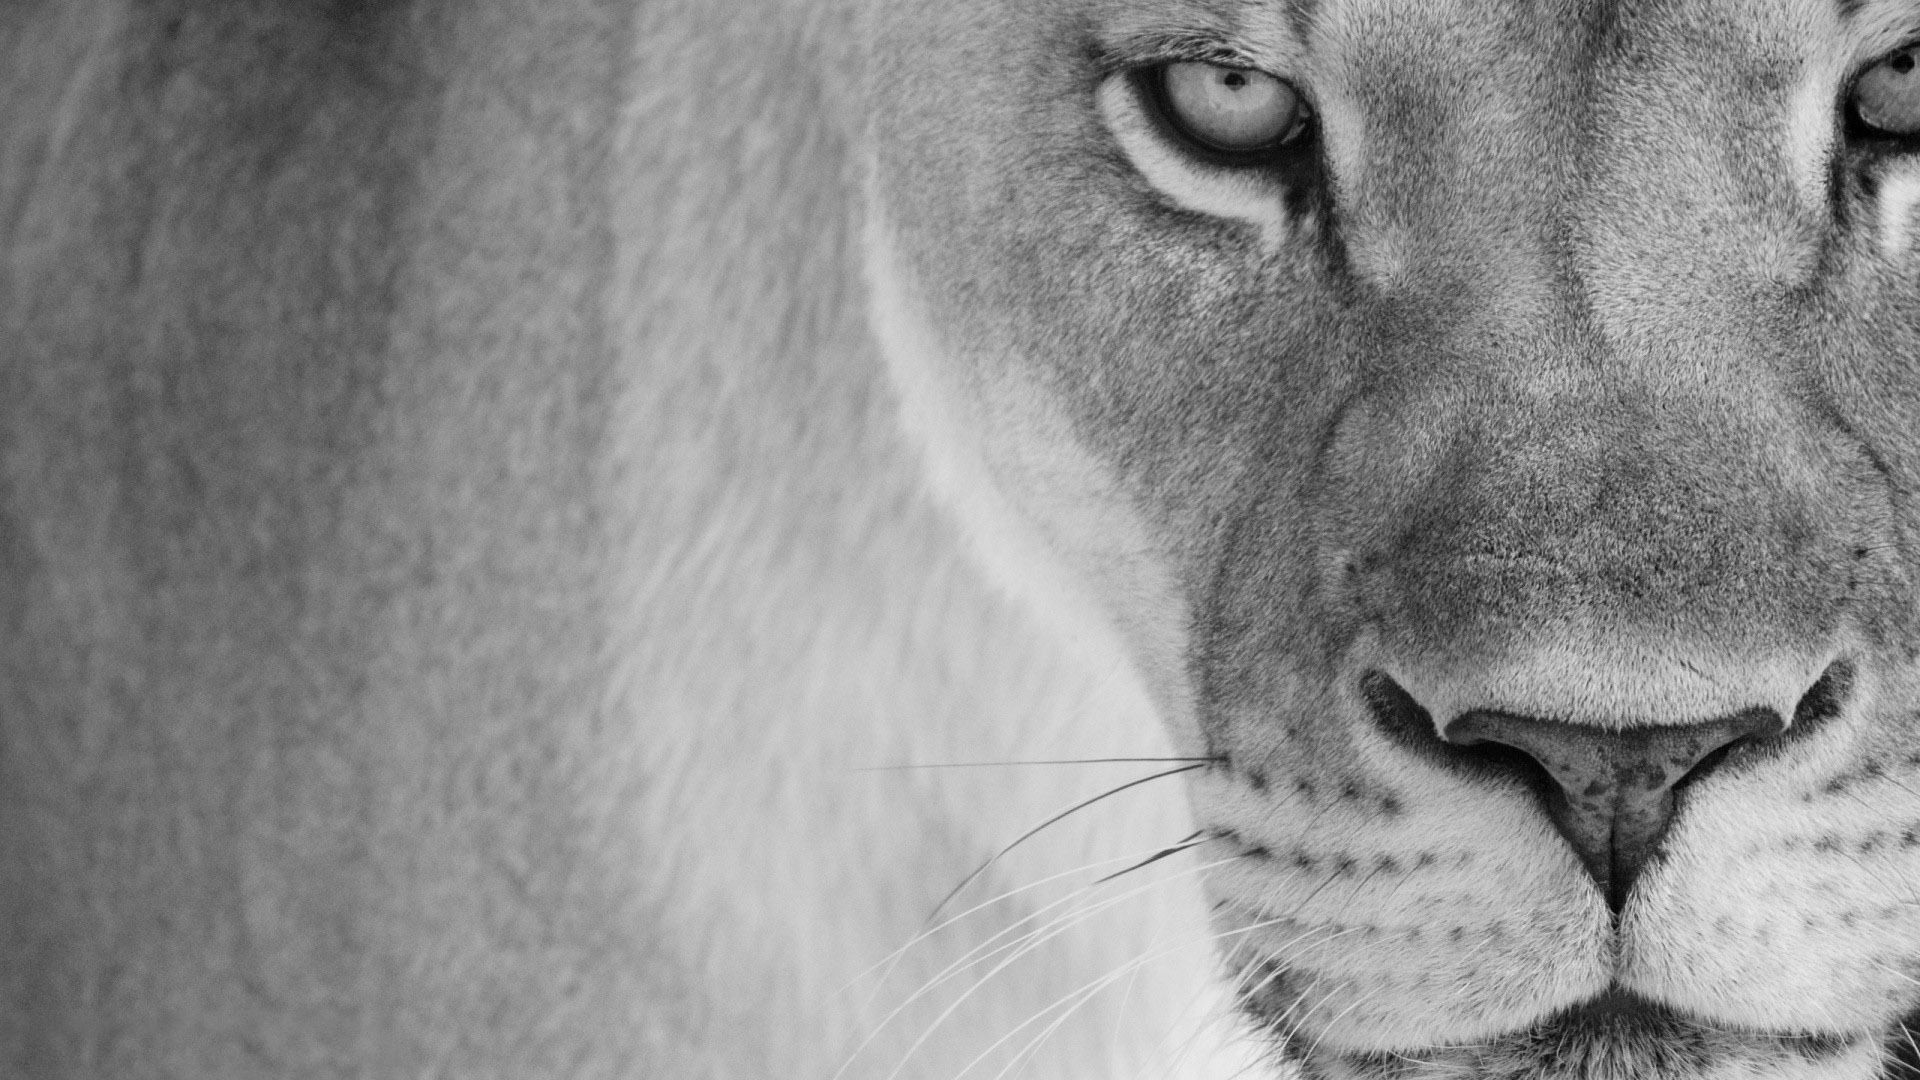 Lion Black And White Animal wallpaper and themes